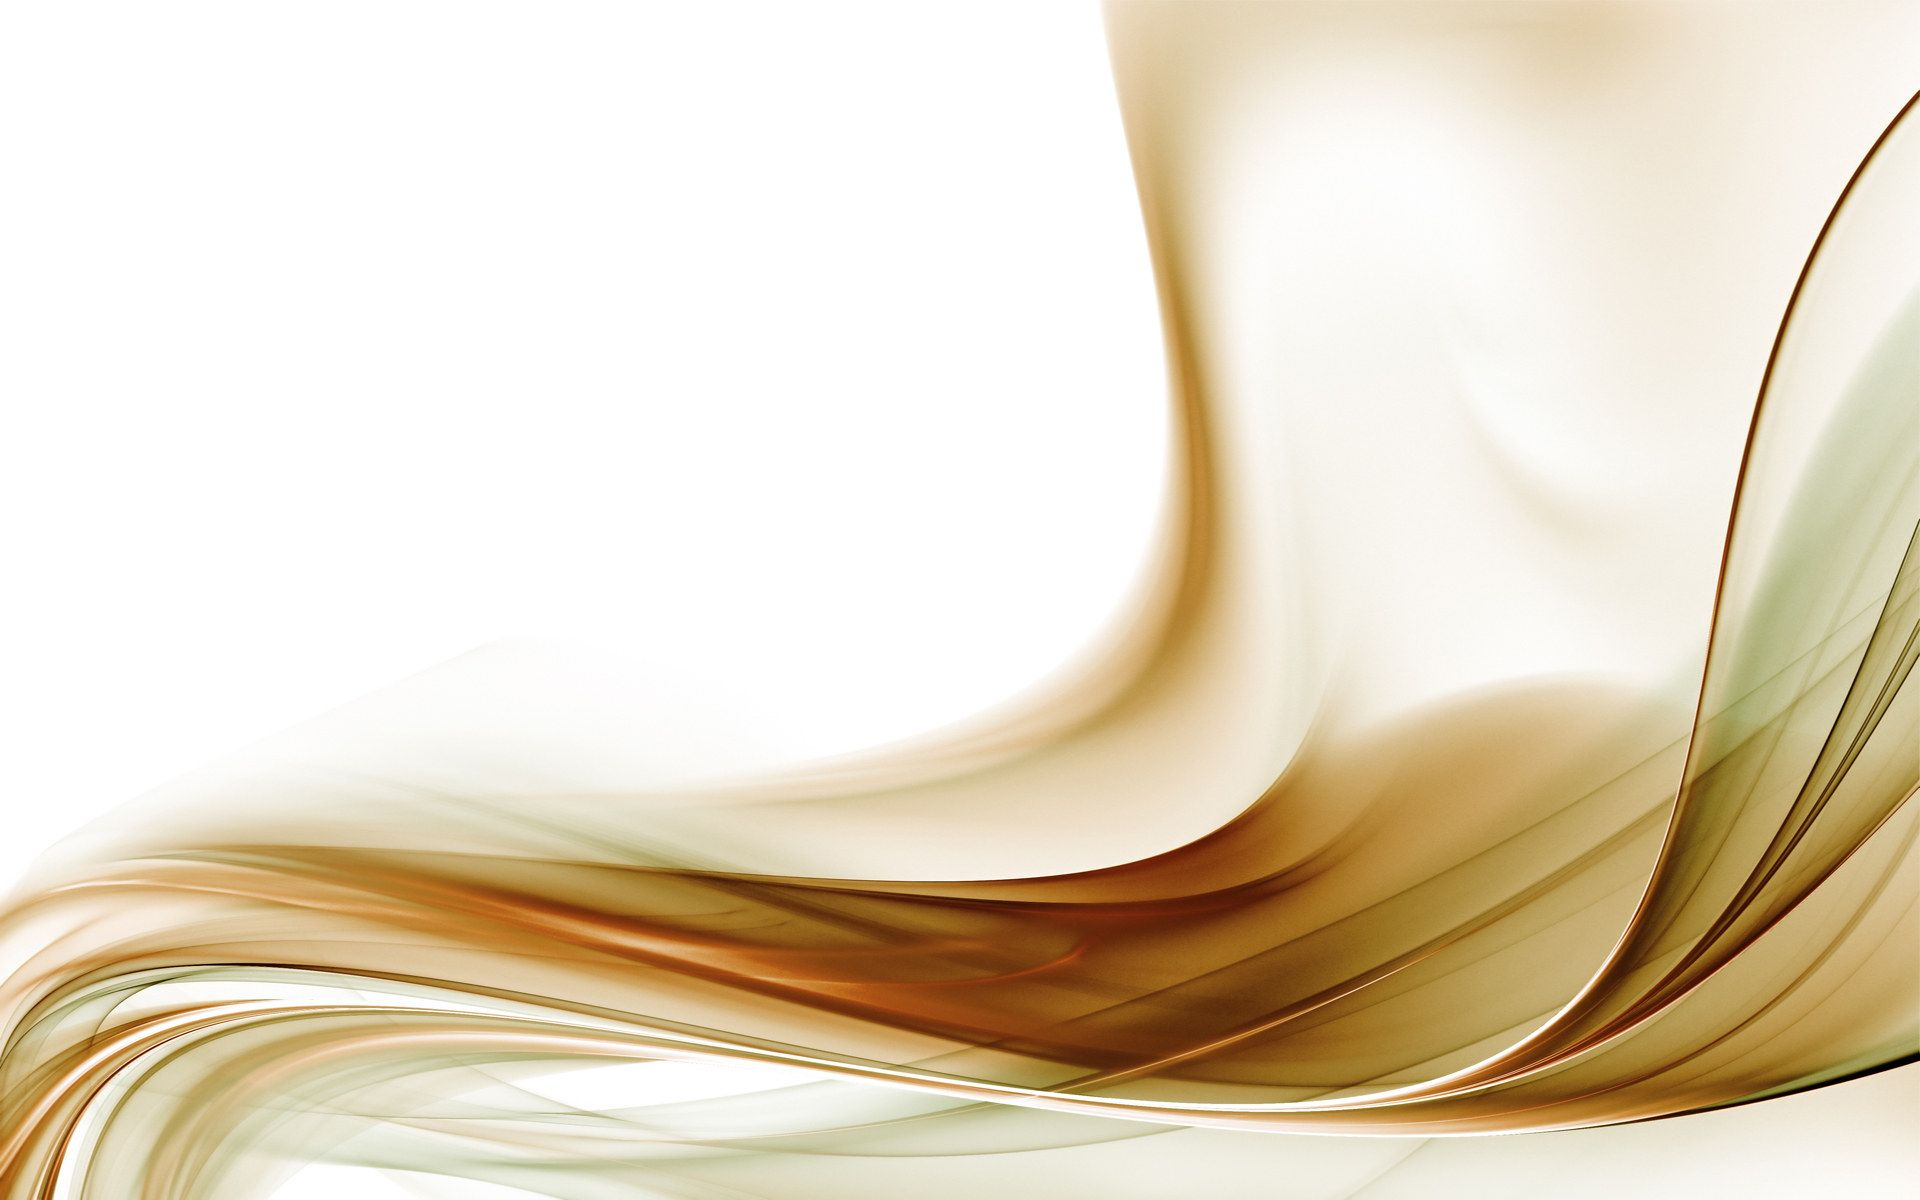 Gold Abstract With White Background HD Wallpaper Image